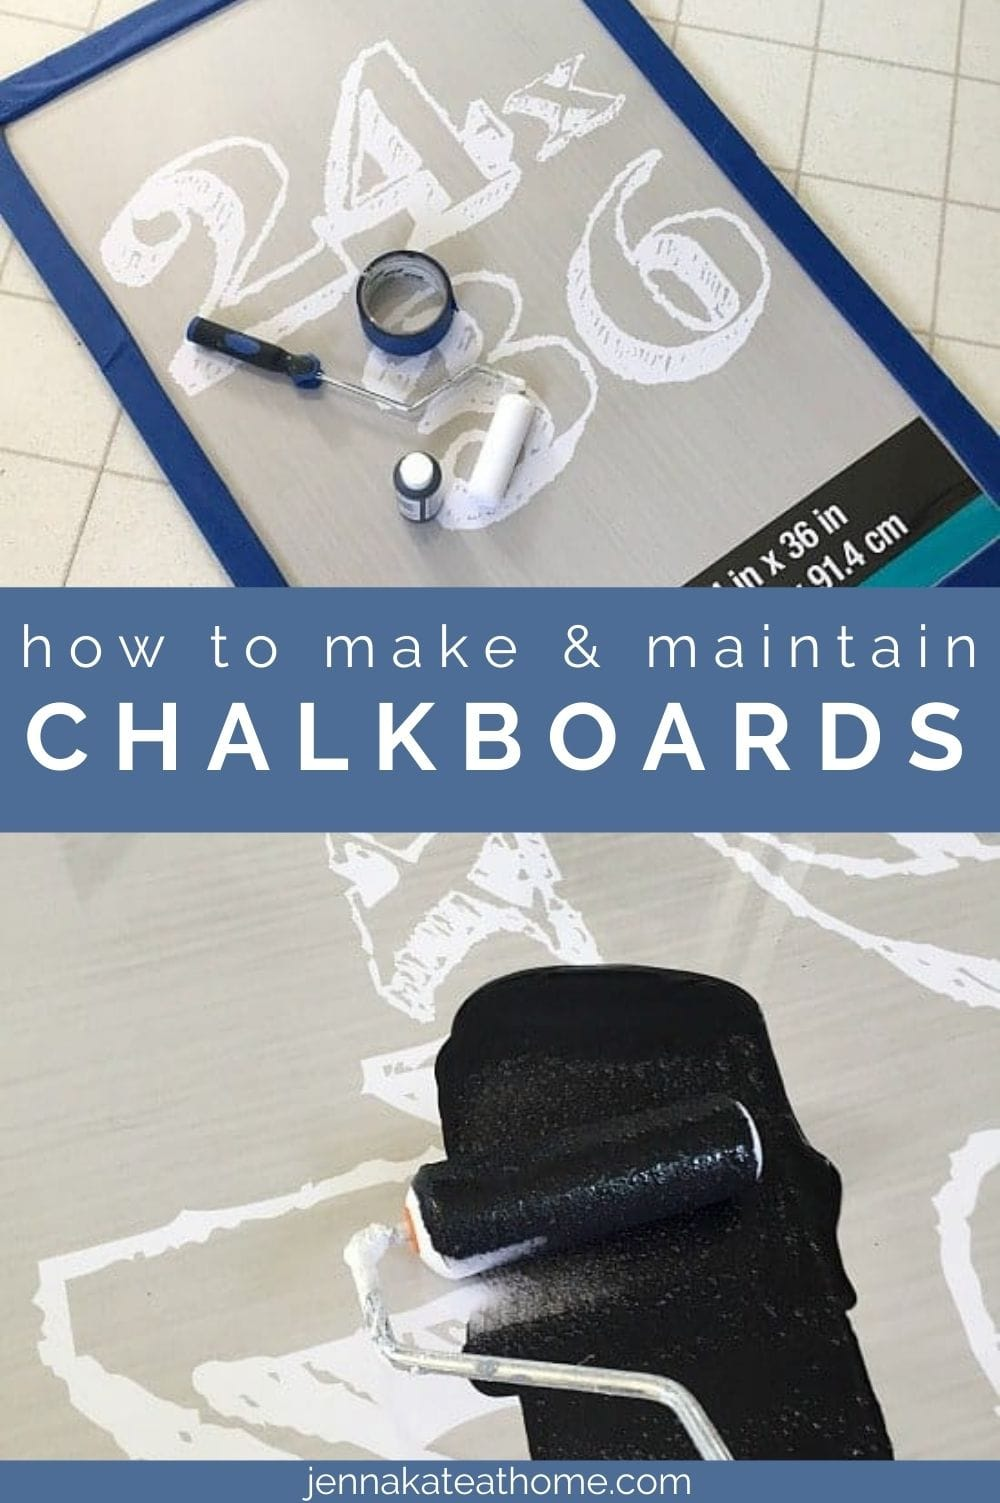 how to make and maintain chalkboards pin